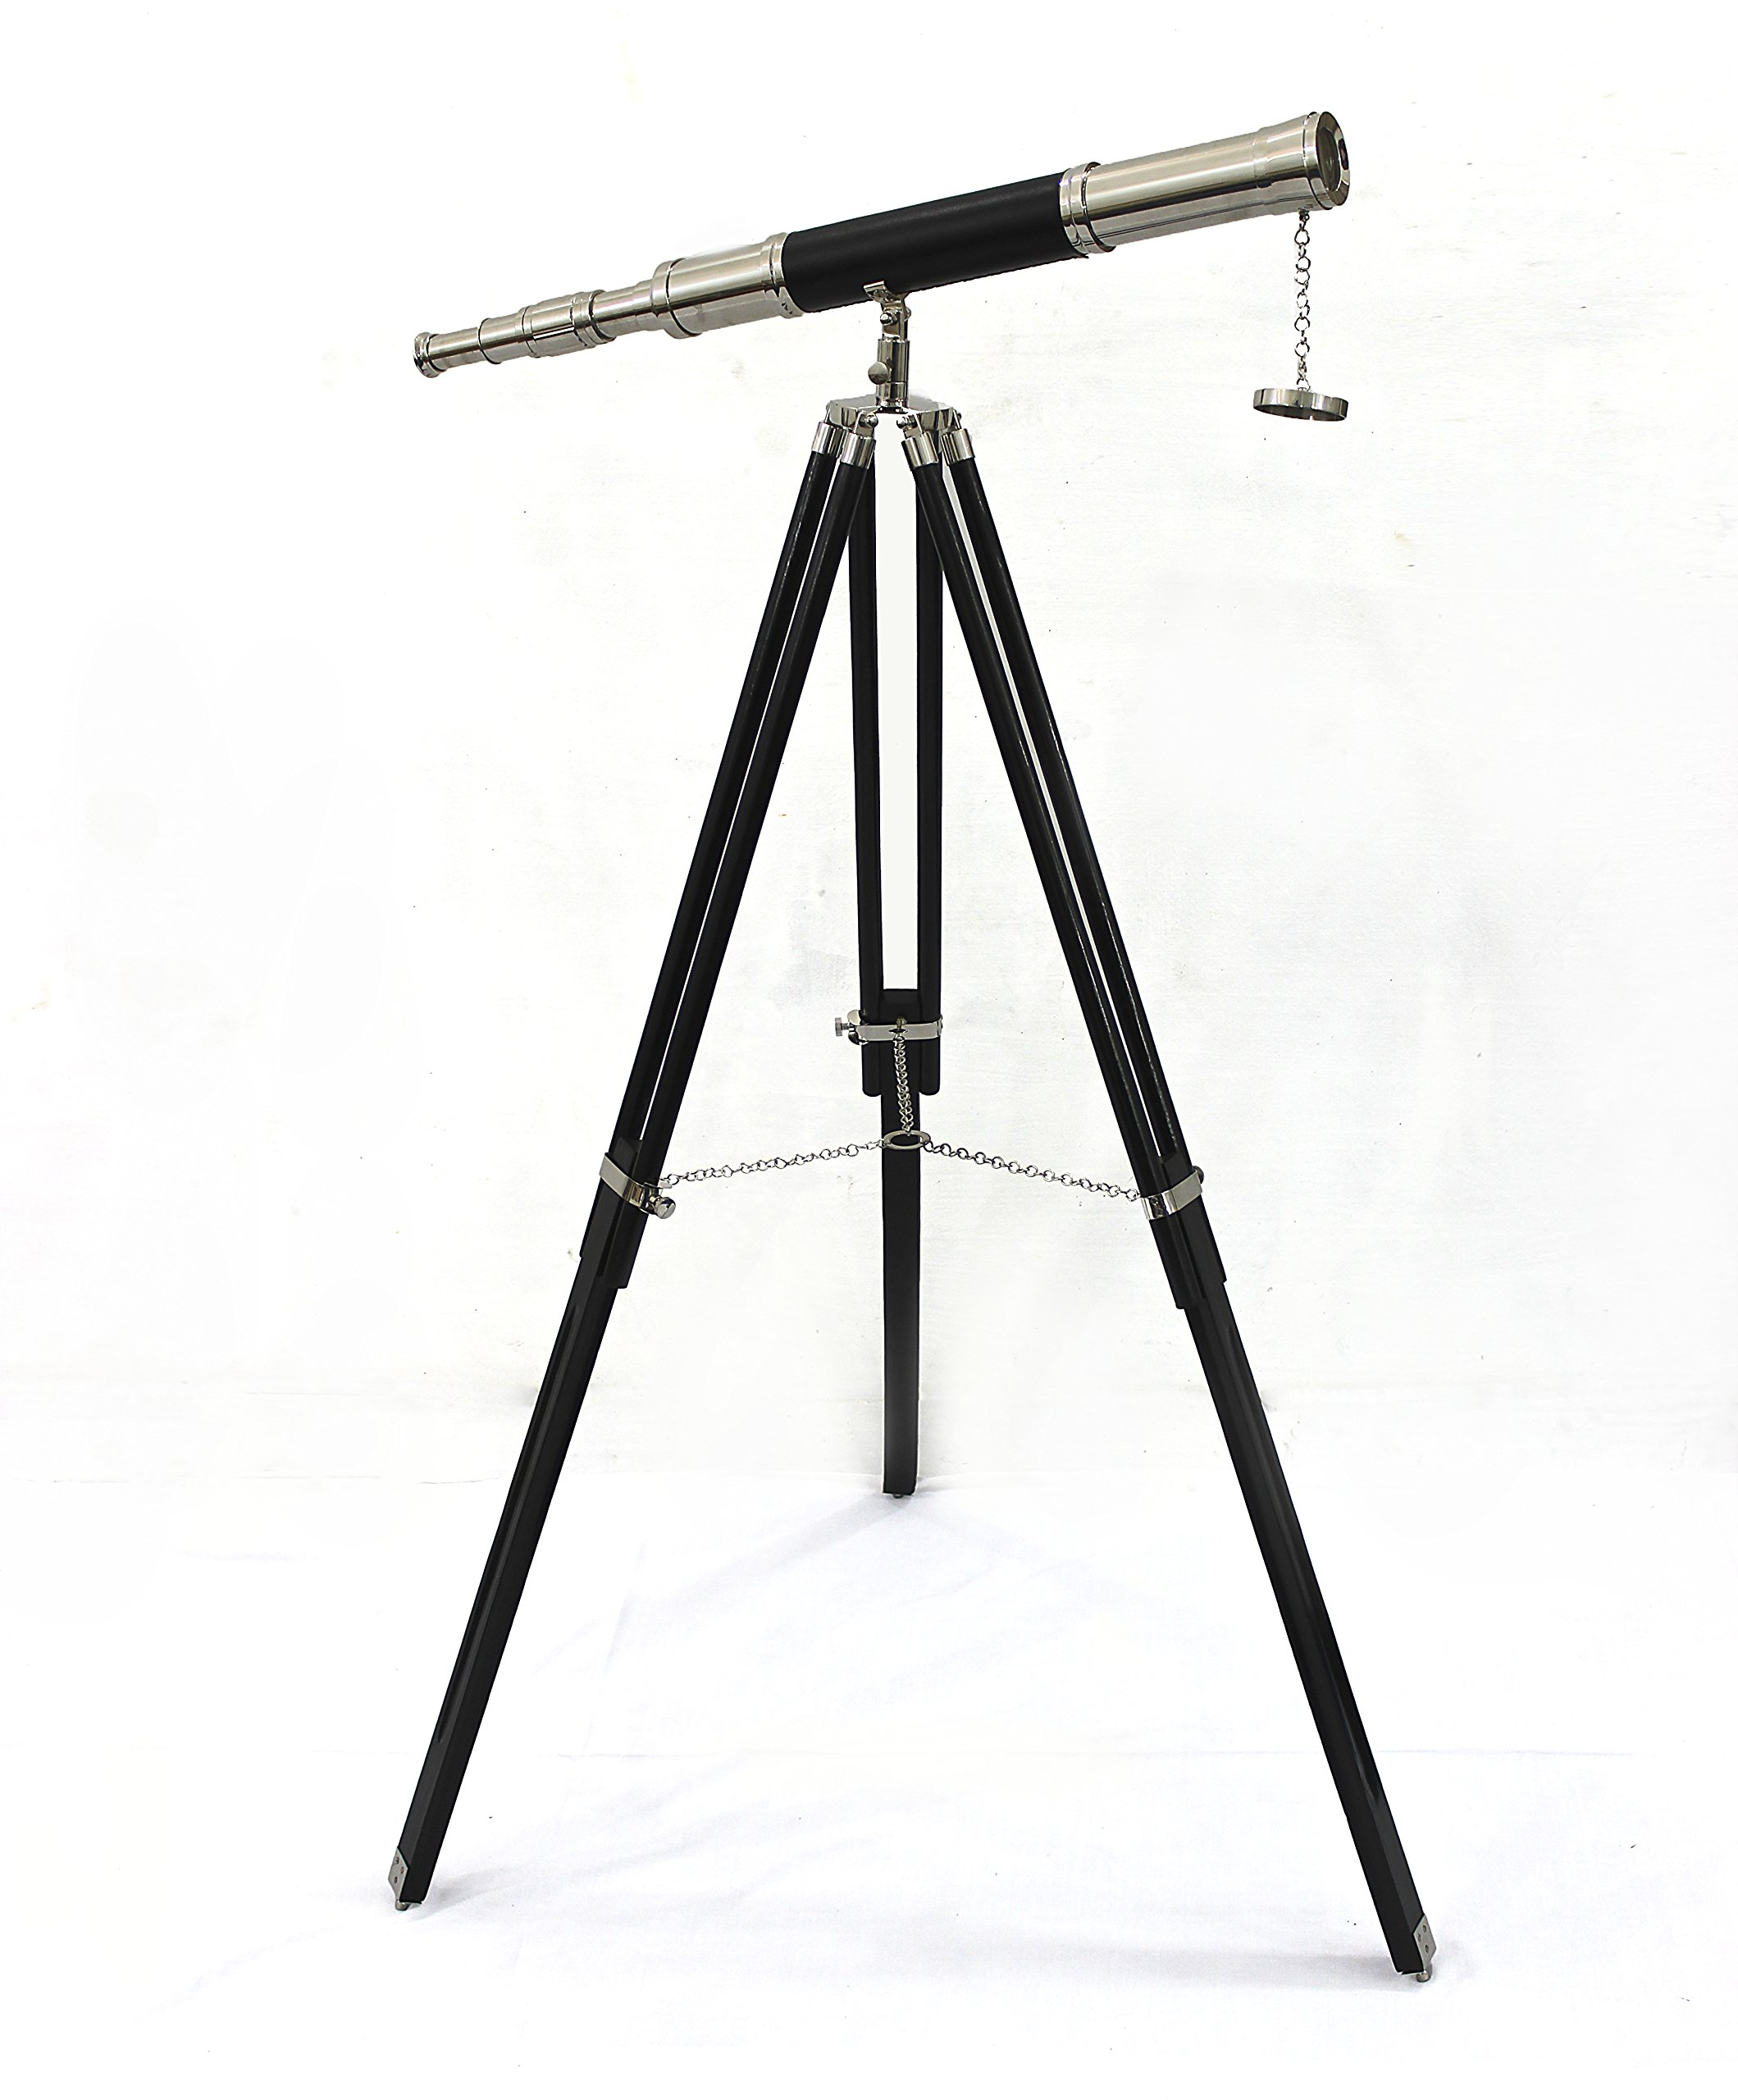 A Marine Chrome Brass Black Leather Telescope Brown Tripod Vintage Telescope Nautical Gifts by Collectibles Buy